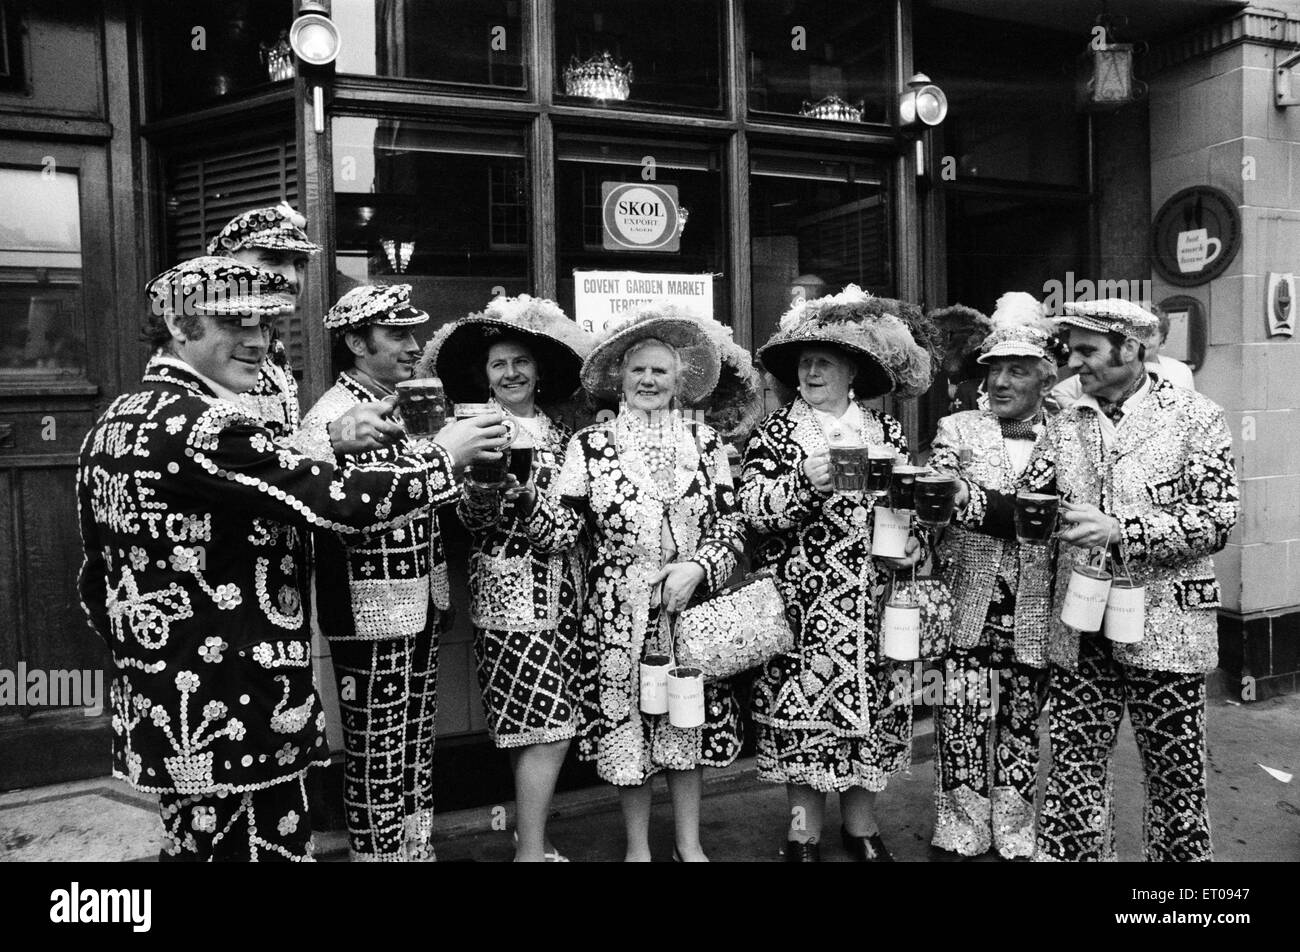 Pearly Kings and Queens celebrate Covent Garden's 300th Birthday, London, 9th May 1970. - Stock Image